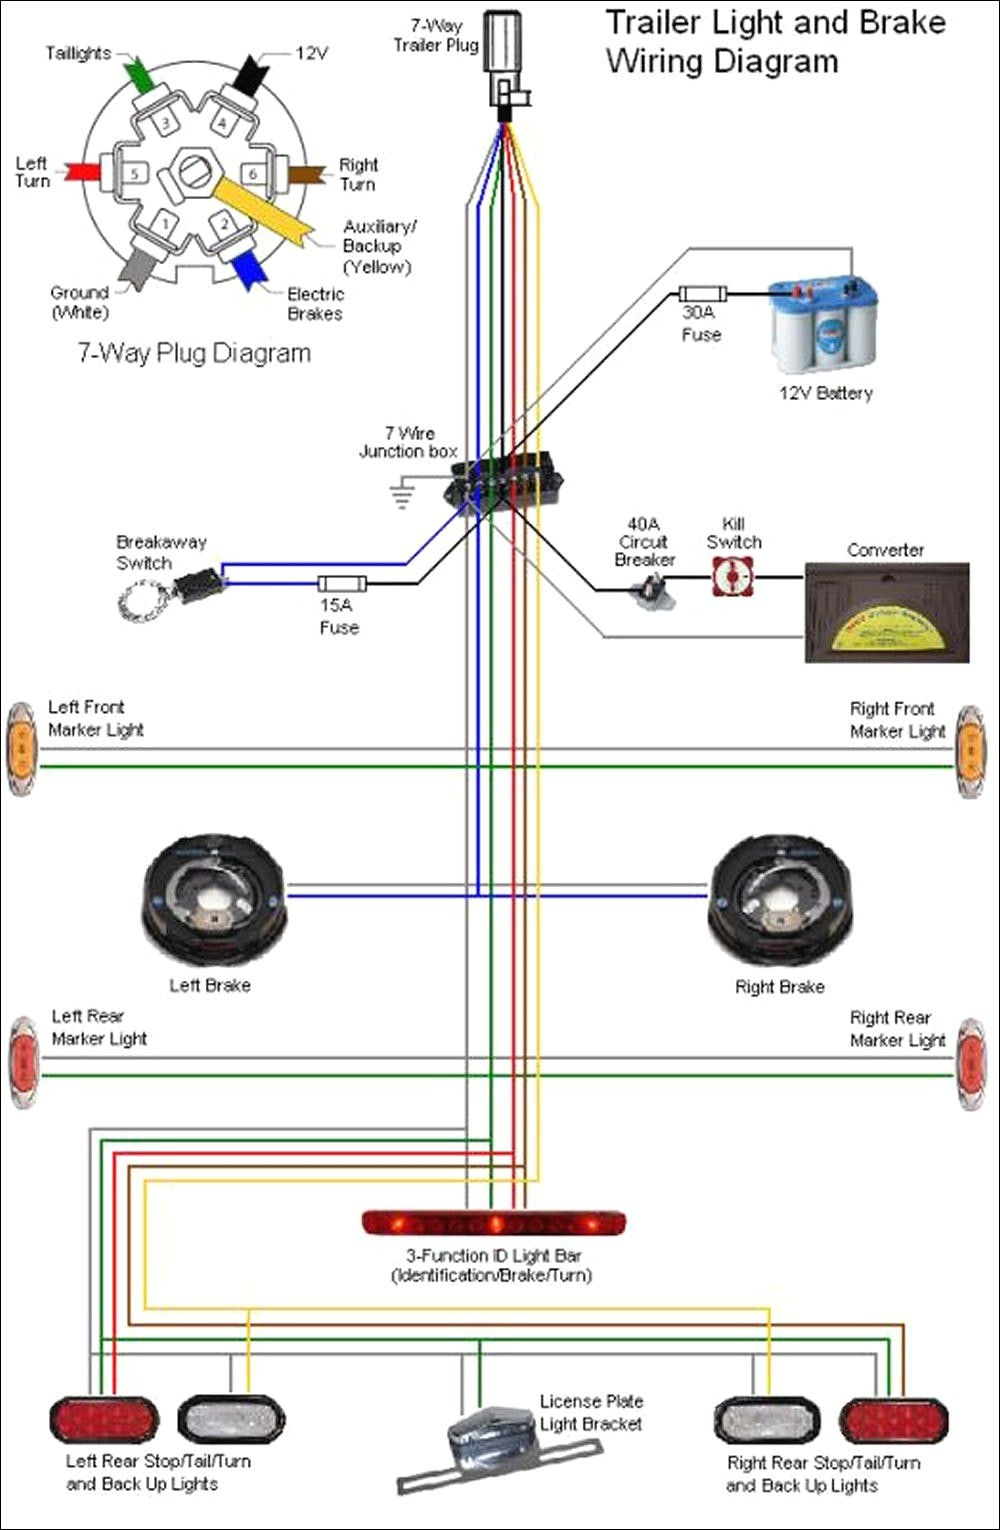 [DIAGRAM_0HG]  Wiring Diagram For 6 Blade Trailer Plug | 7 Way Trailer Wiring Diagram Tractor |  | Wiring Diagram